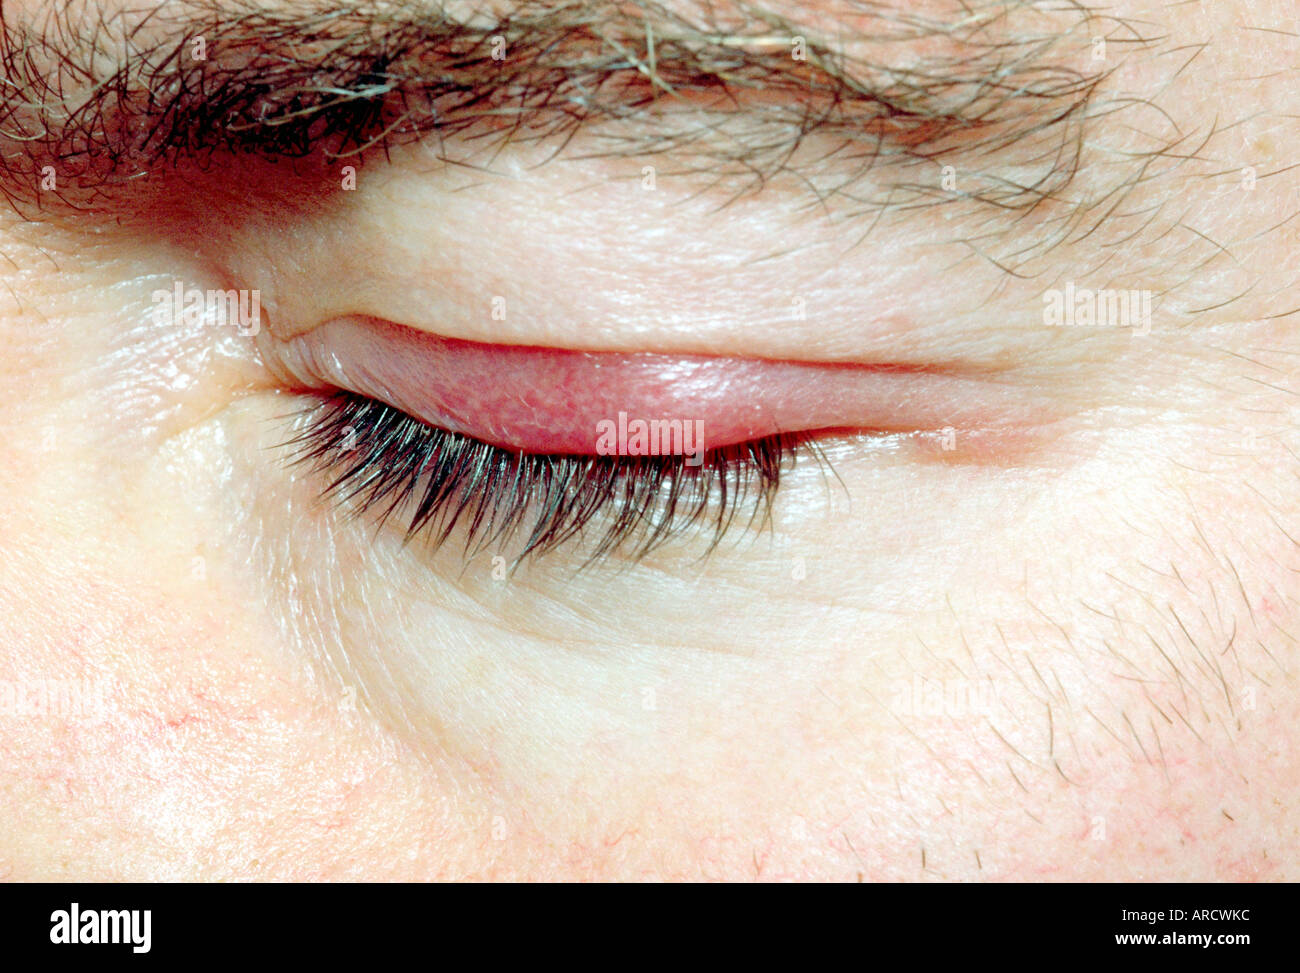 Blepharitis is inflammation of the eyelids. - Stock Image